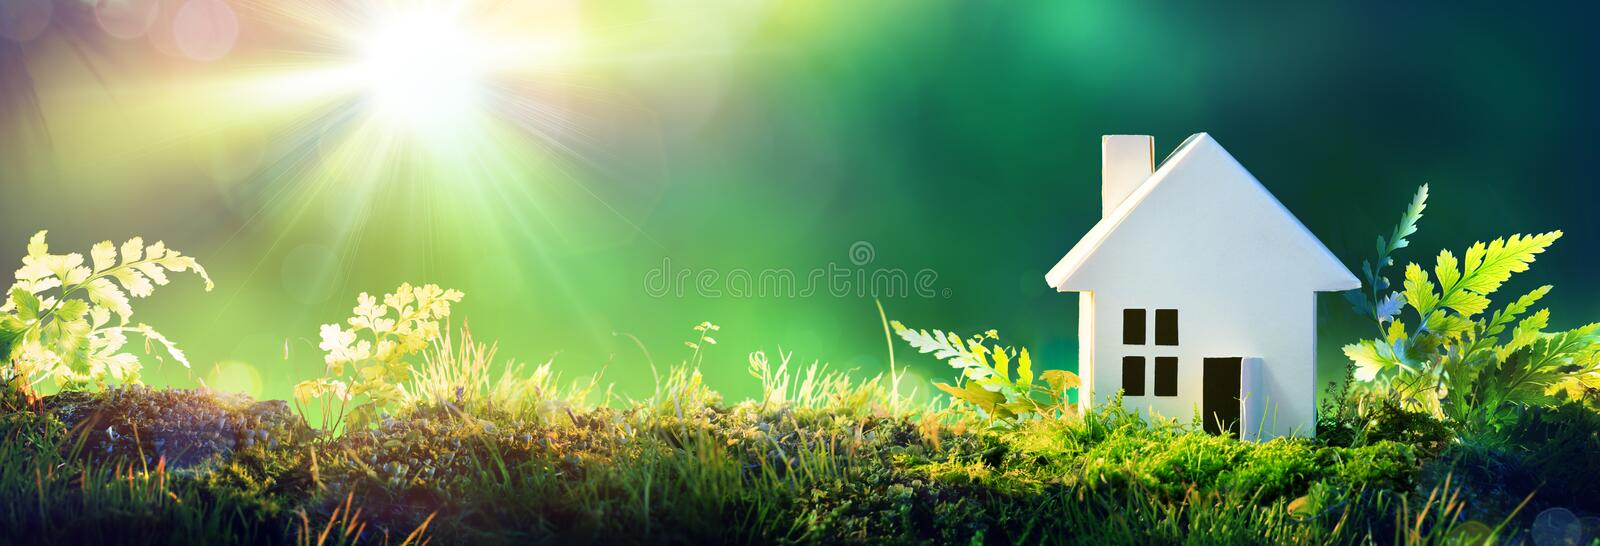 Eco Friendly House - Paper Home On Moss royalty free stock images